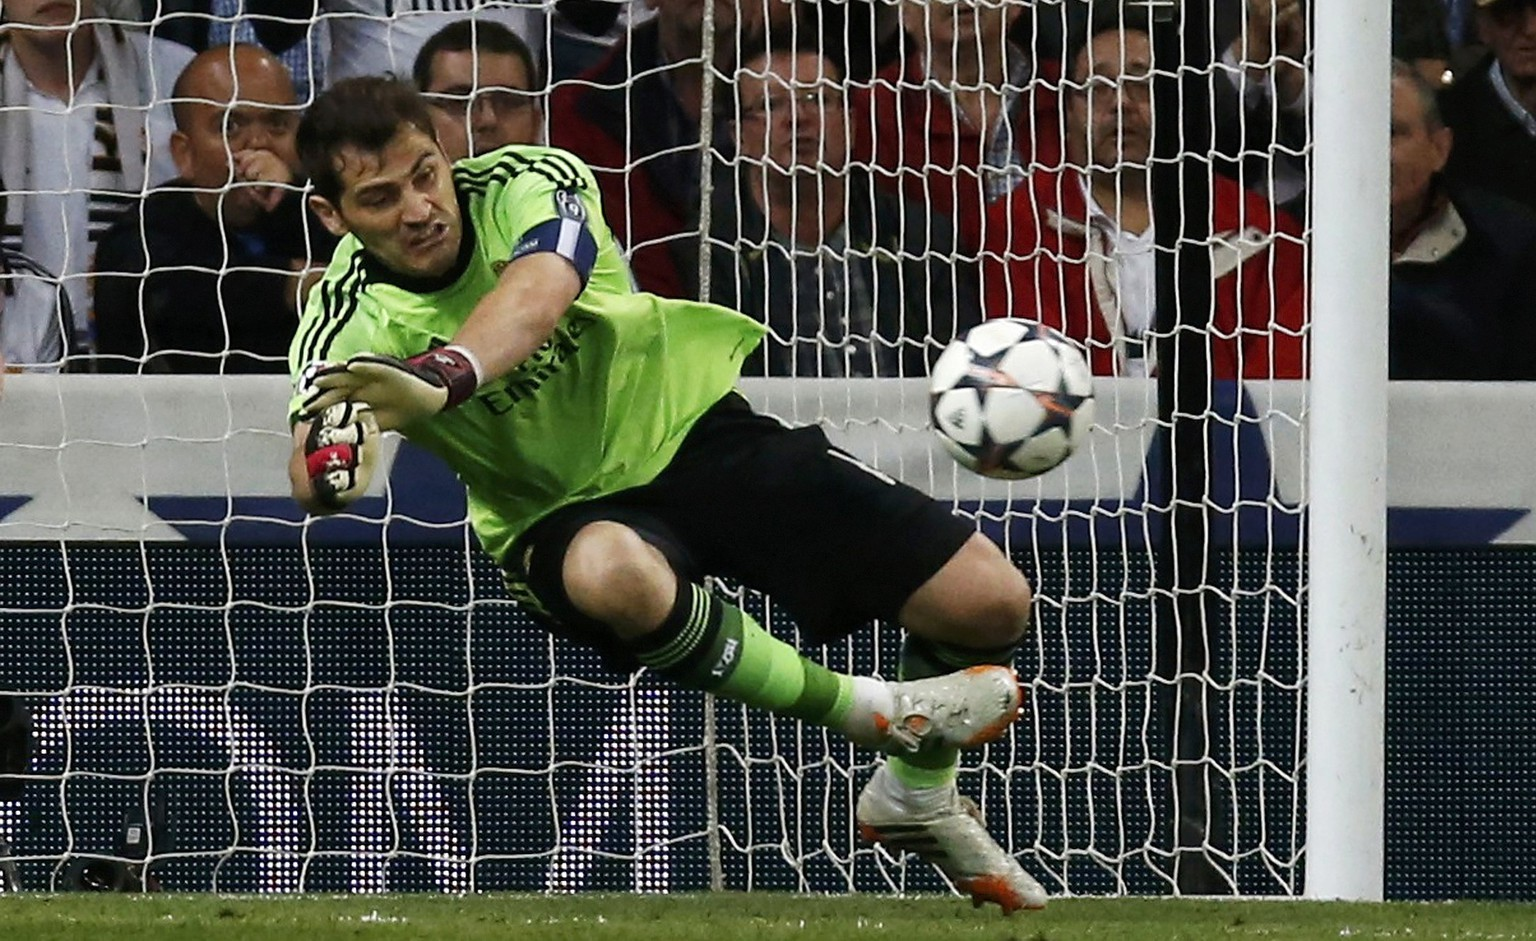 Real Madrid's Karim goalkeeper Iker Casillas saves a shot from Bayern Munich's Thomas Mueller during their Champions League semi-final first leg soccer match at Santiago Bernabeu stadium in Madrid April 23, 2014.     REUTERS/Paul Hanna (SPAIN  - Tags: SPORT SOCCER)